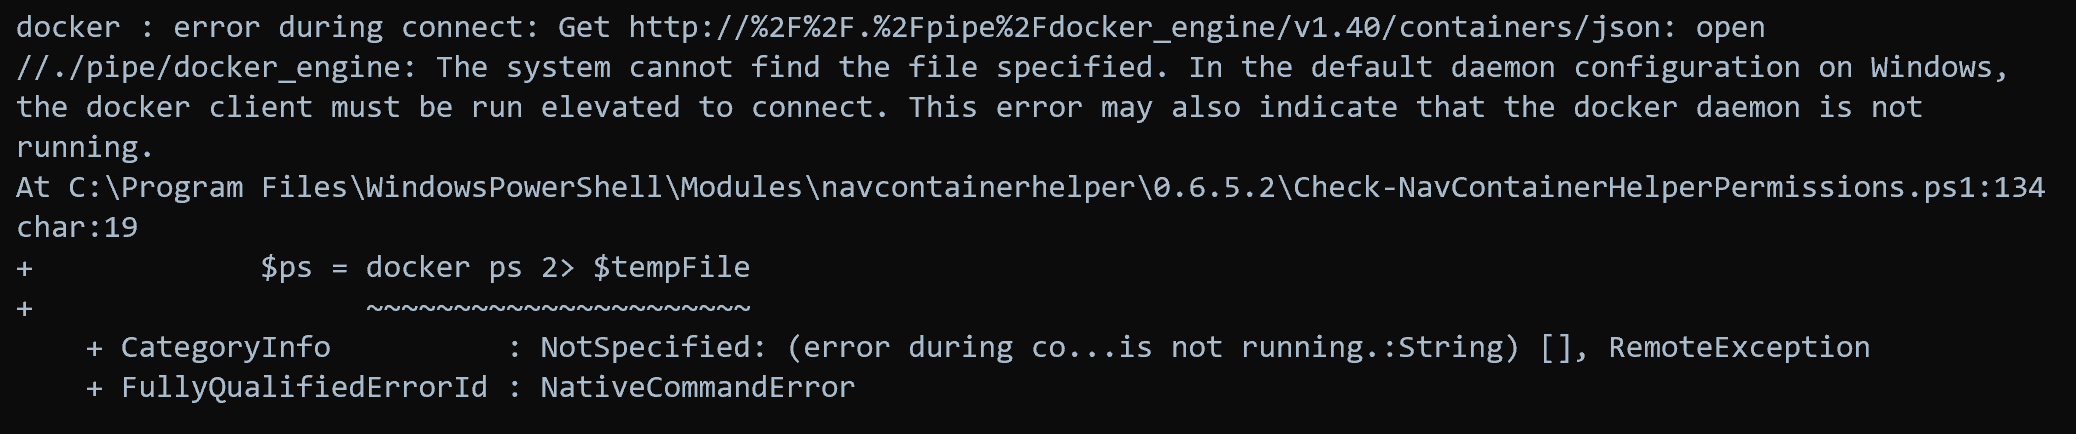 Error when trying to execute a docker command when Docker is not running